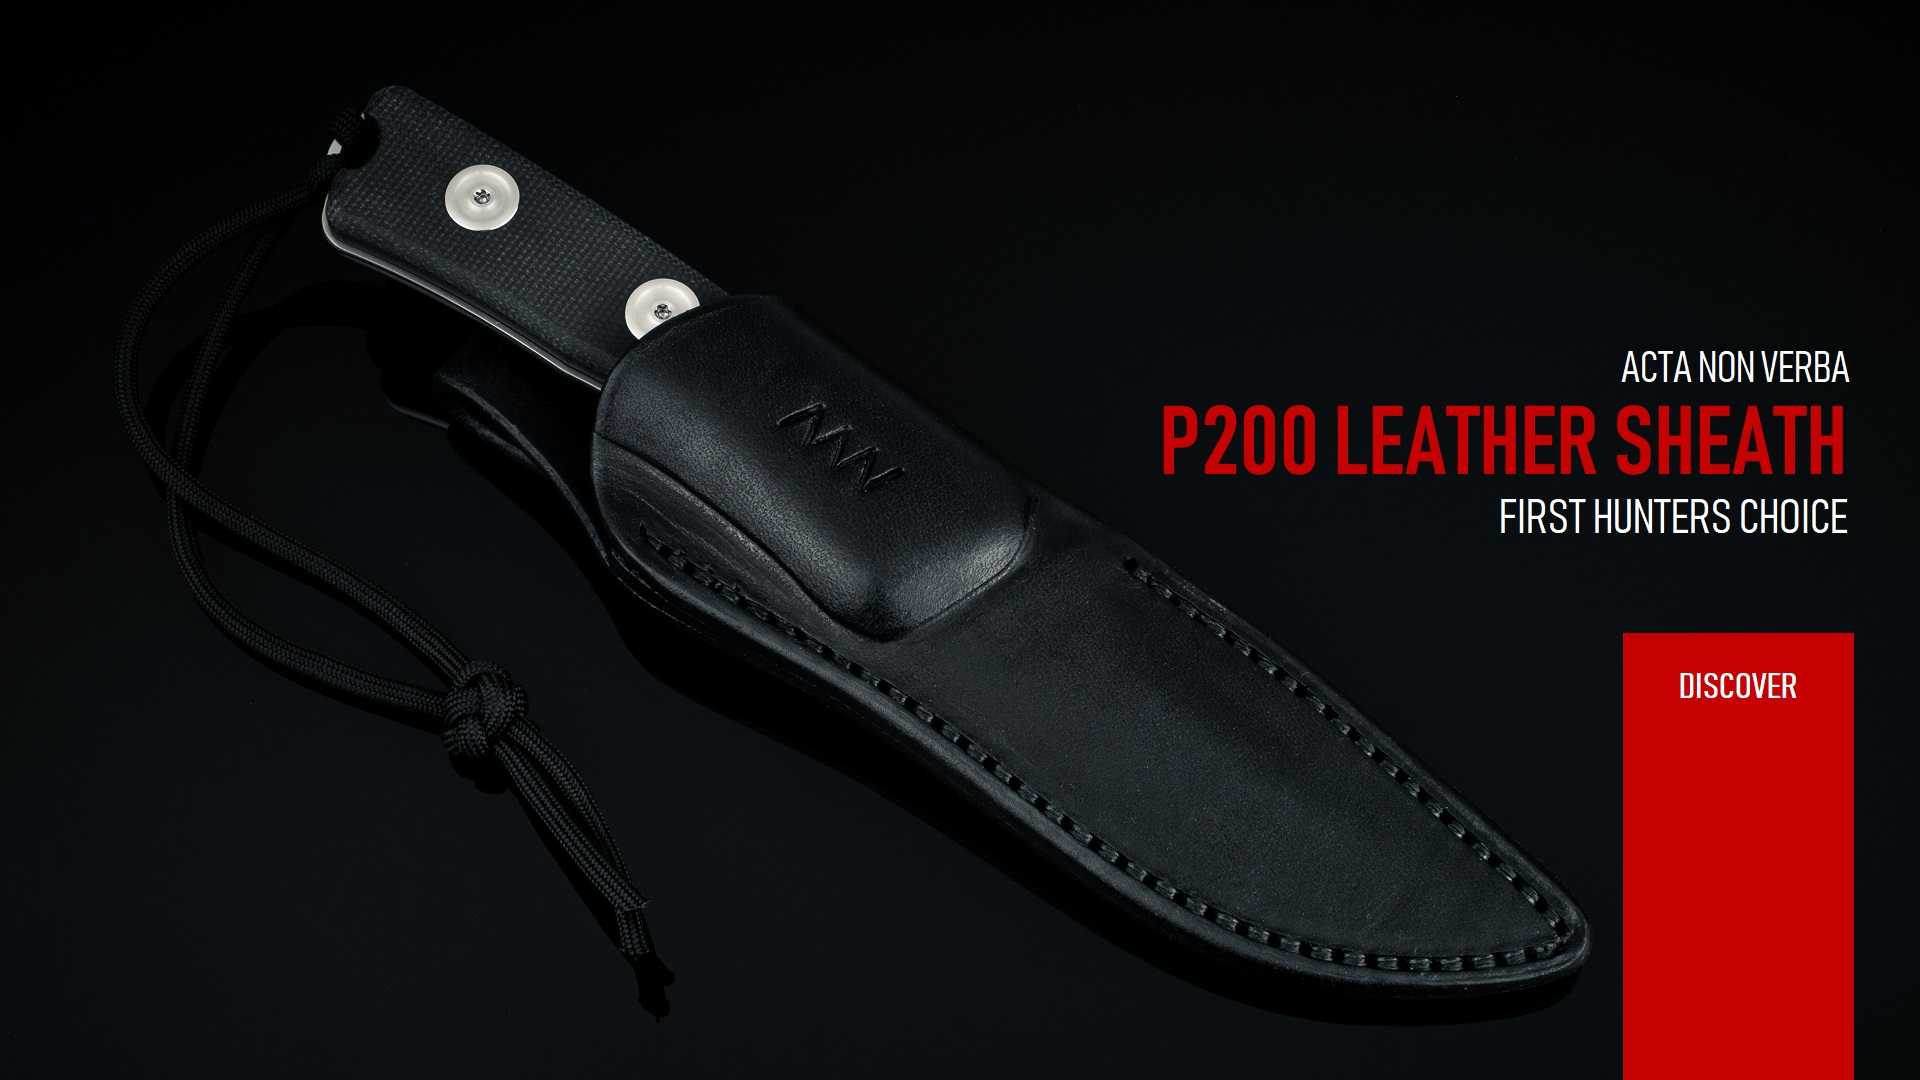 P200 Leather - First Hunters Choice